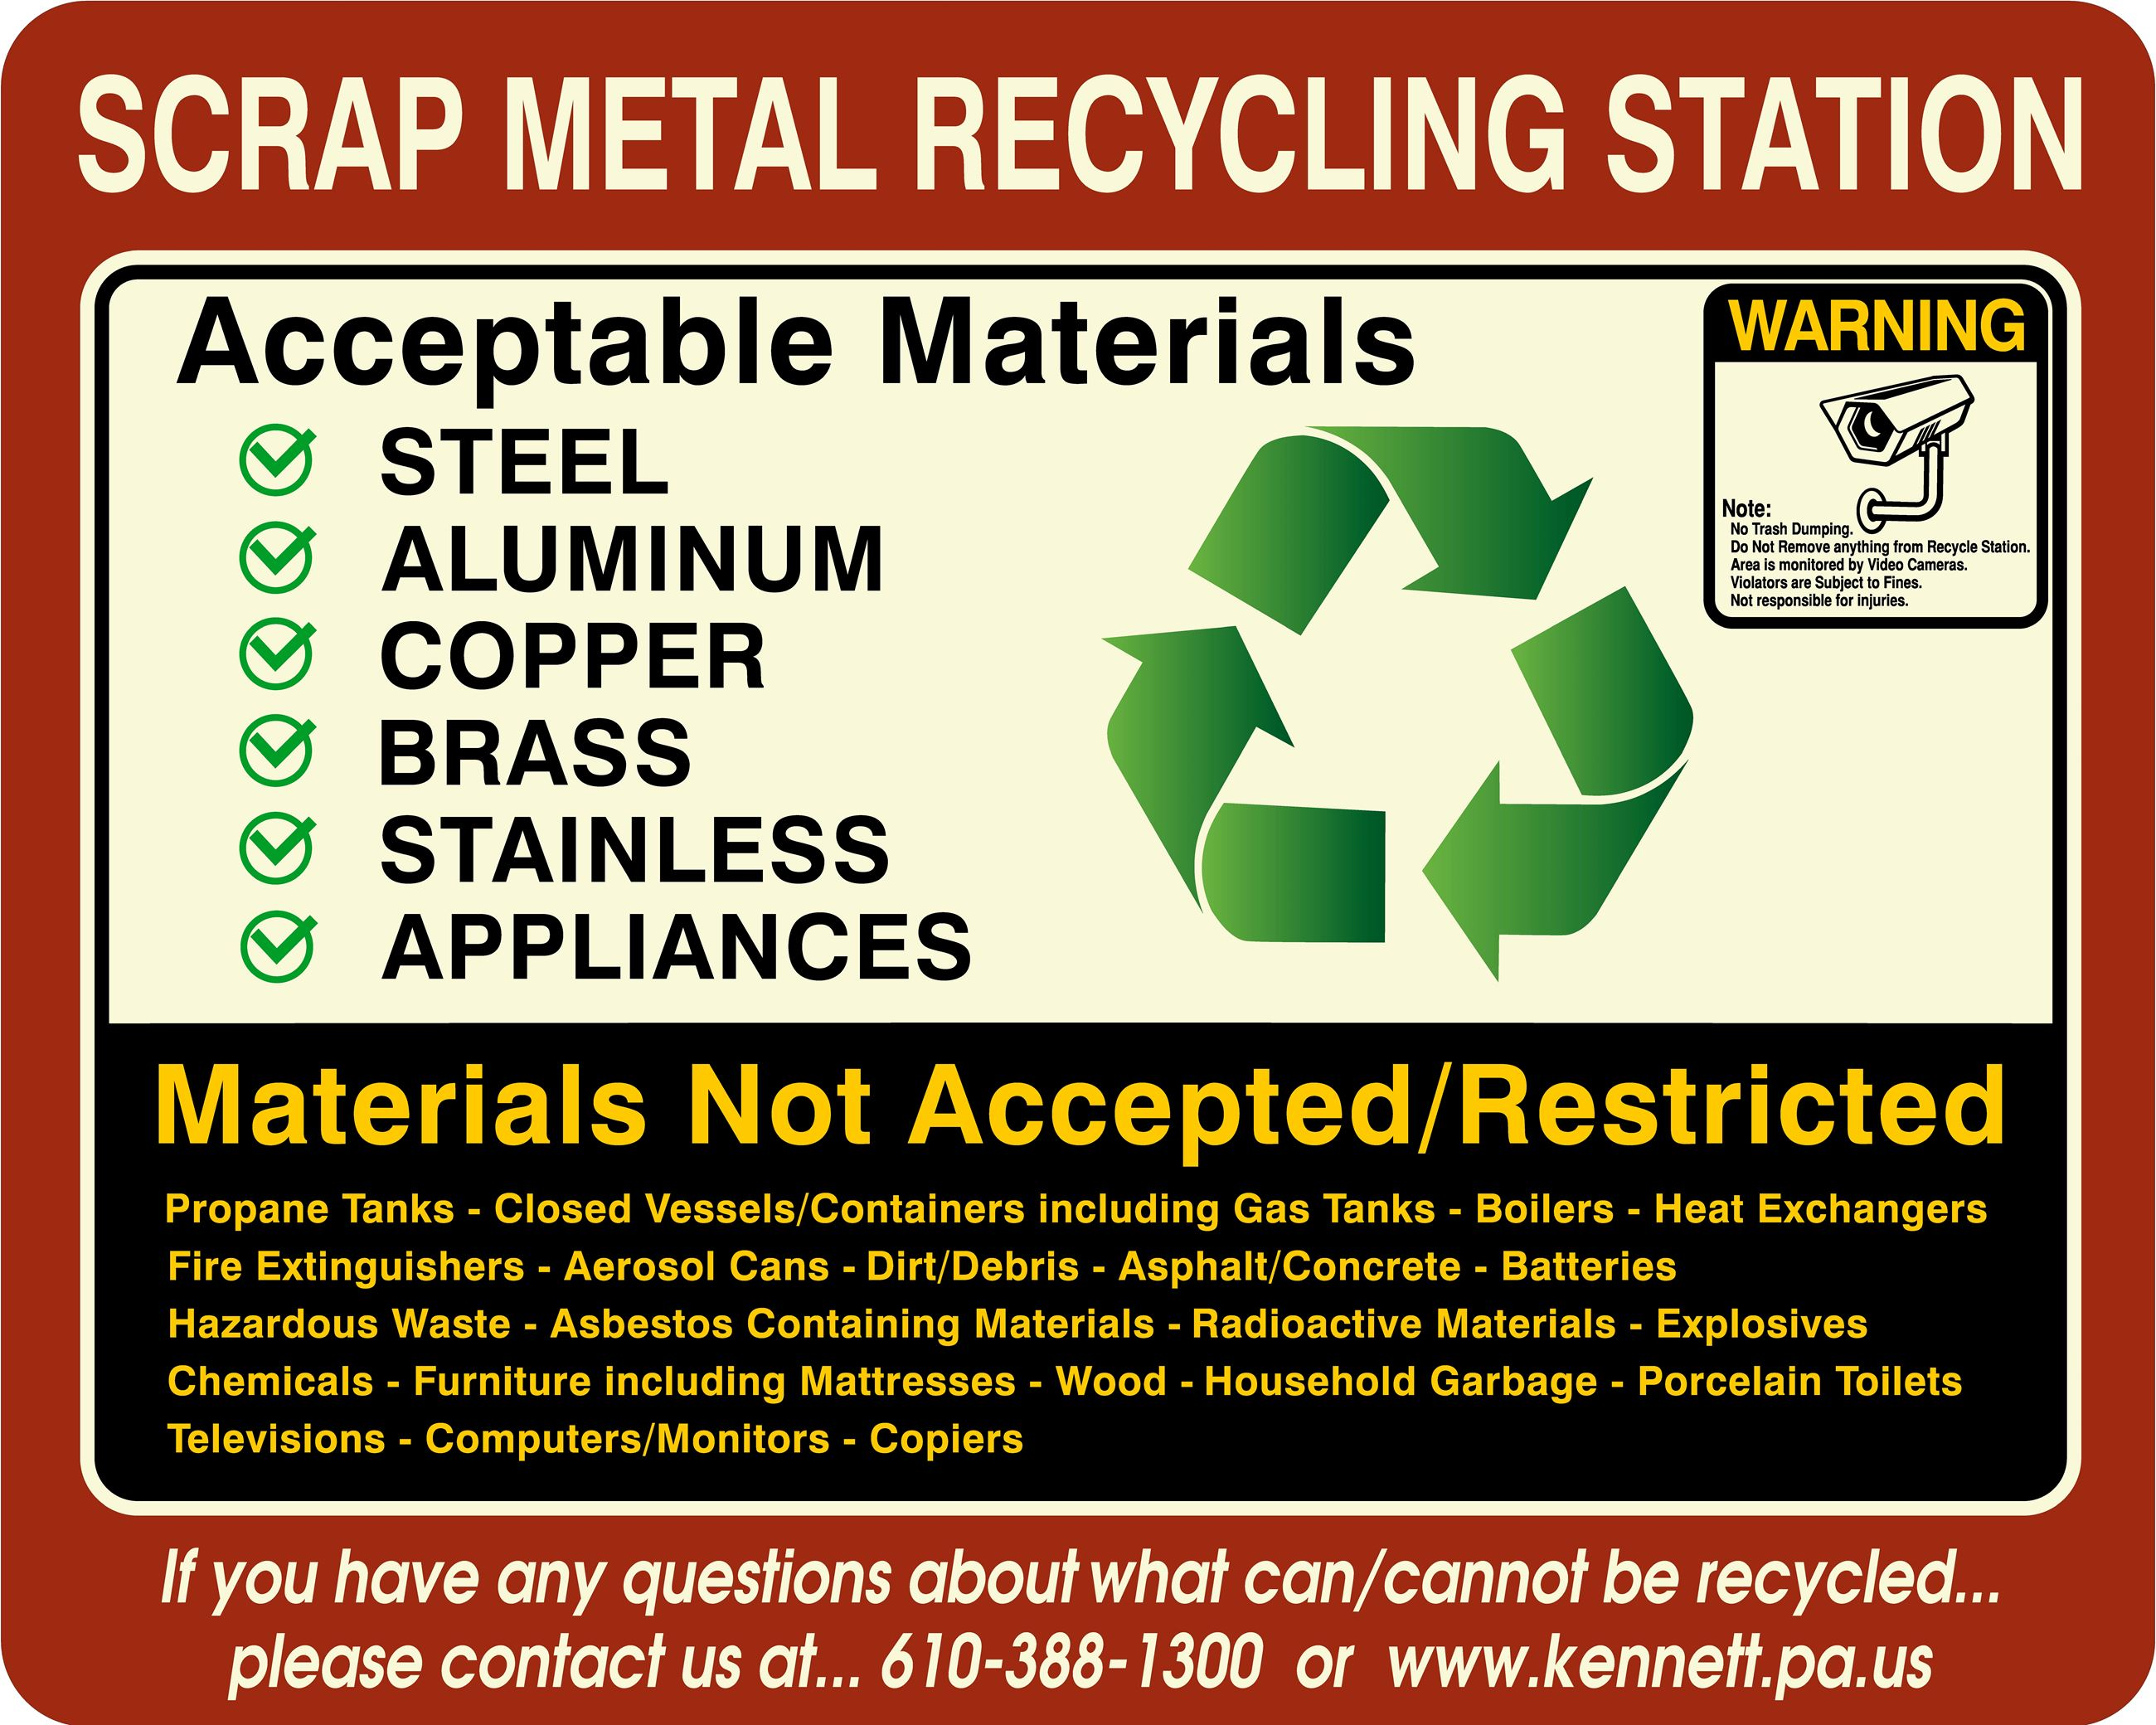 KENNETT TOWNSHIP SCRAP METAL RECYCLING STATION SIGN FOR 2019